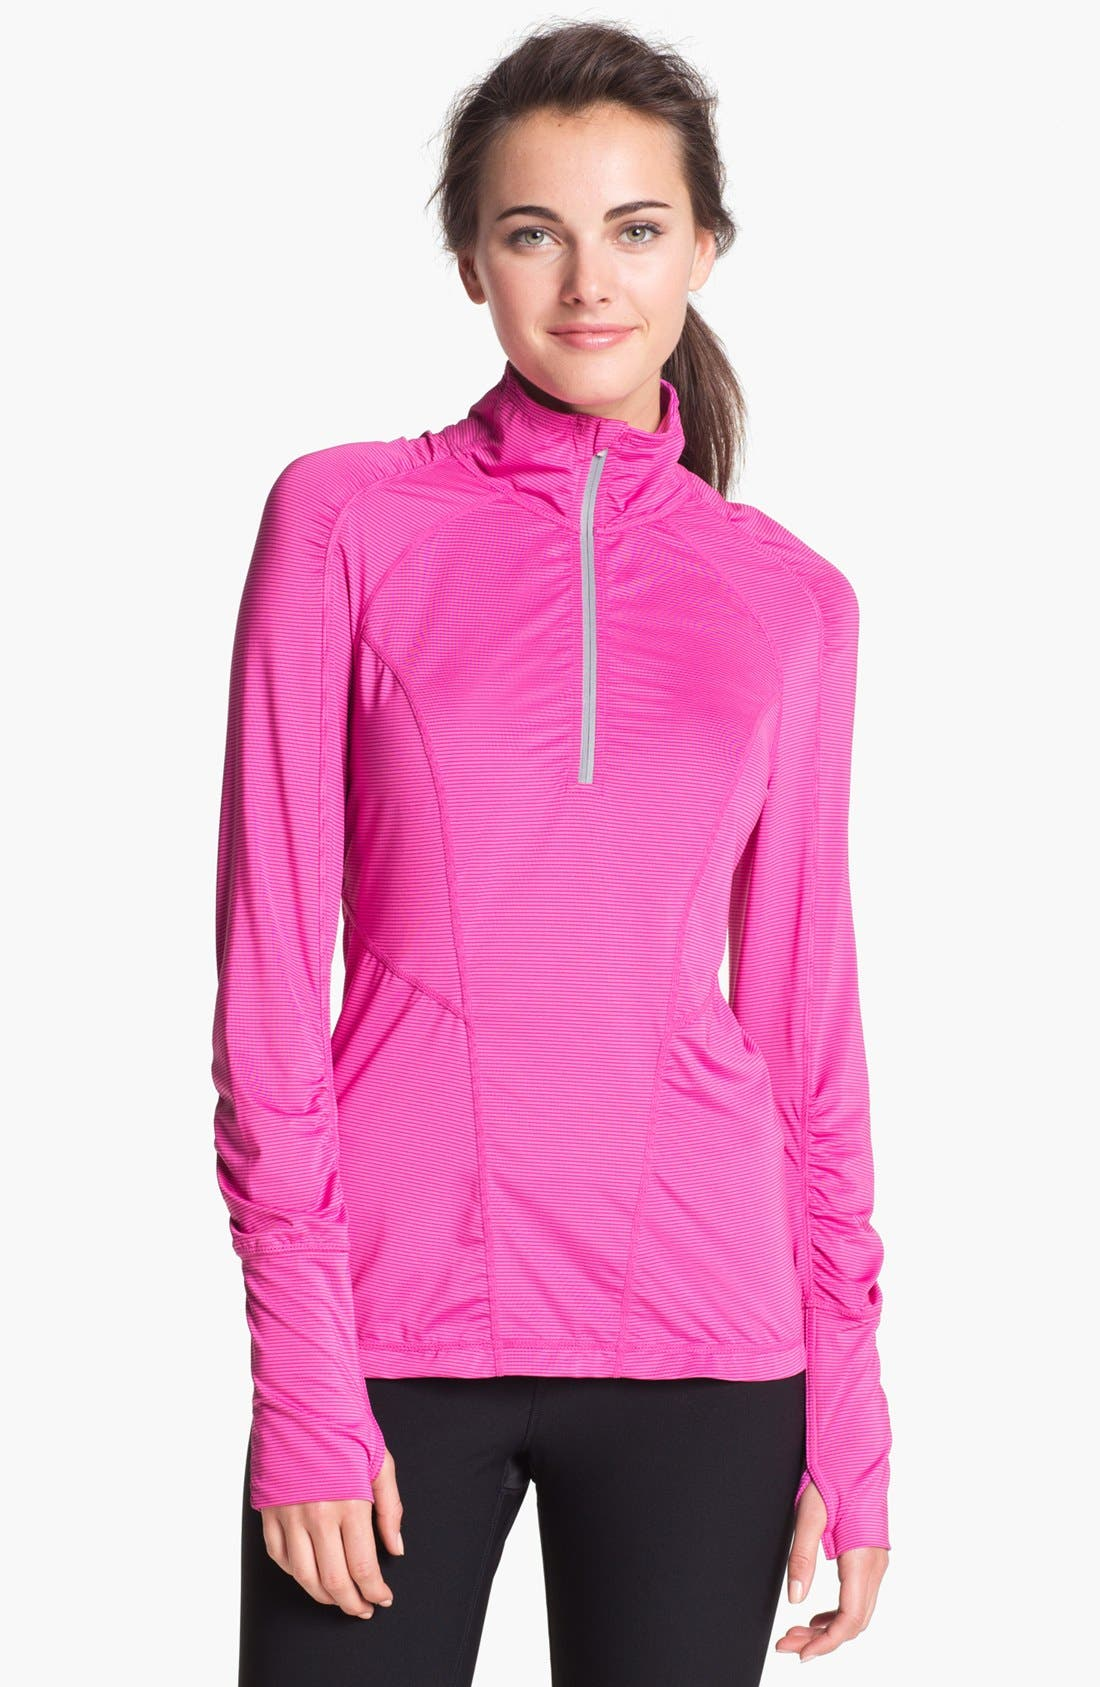 Main Image - Zella 'Ruched Runner' Stripe Half Zip Running Top